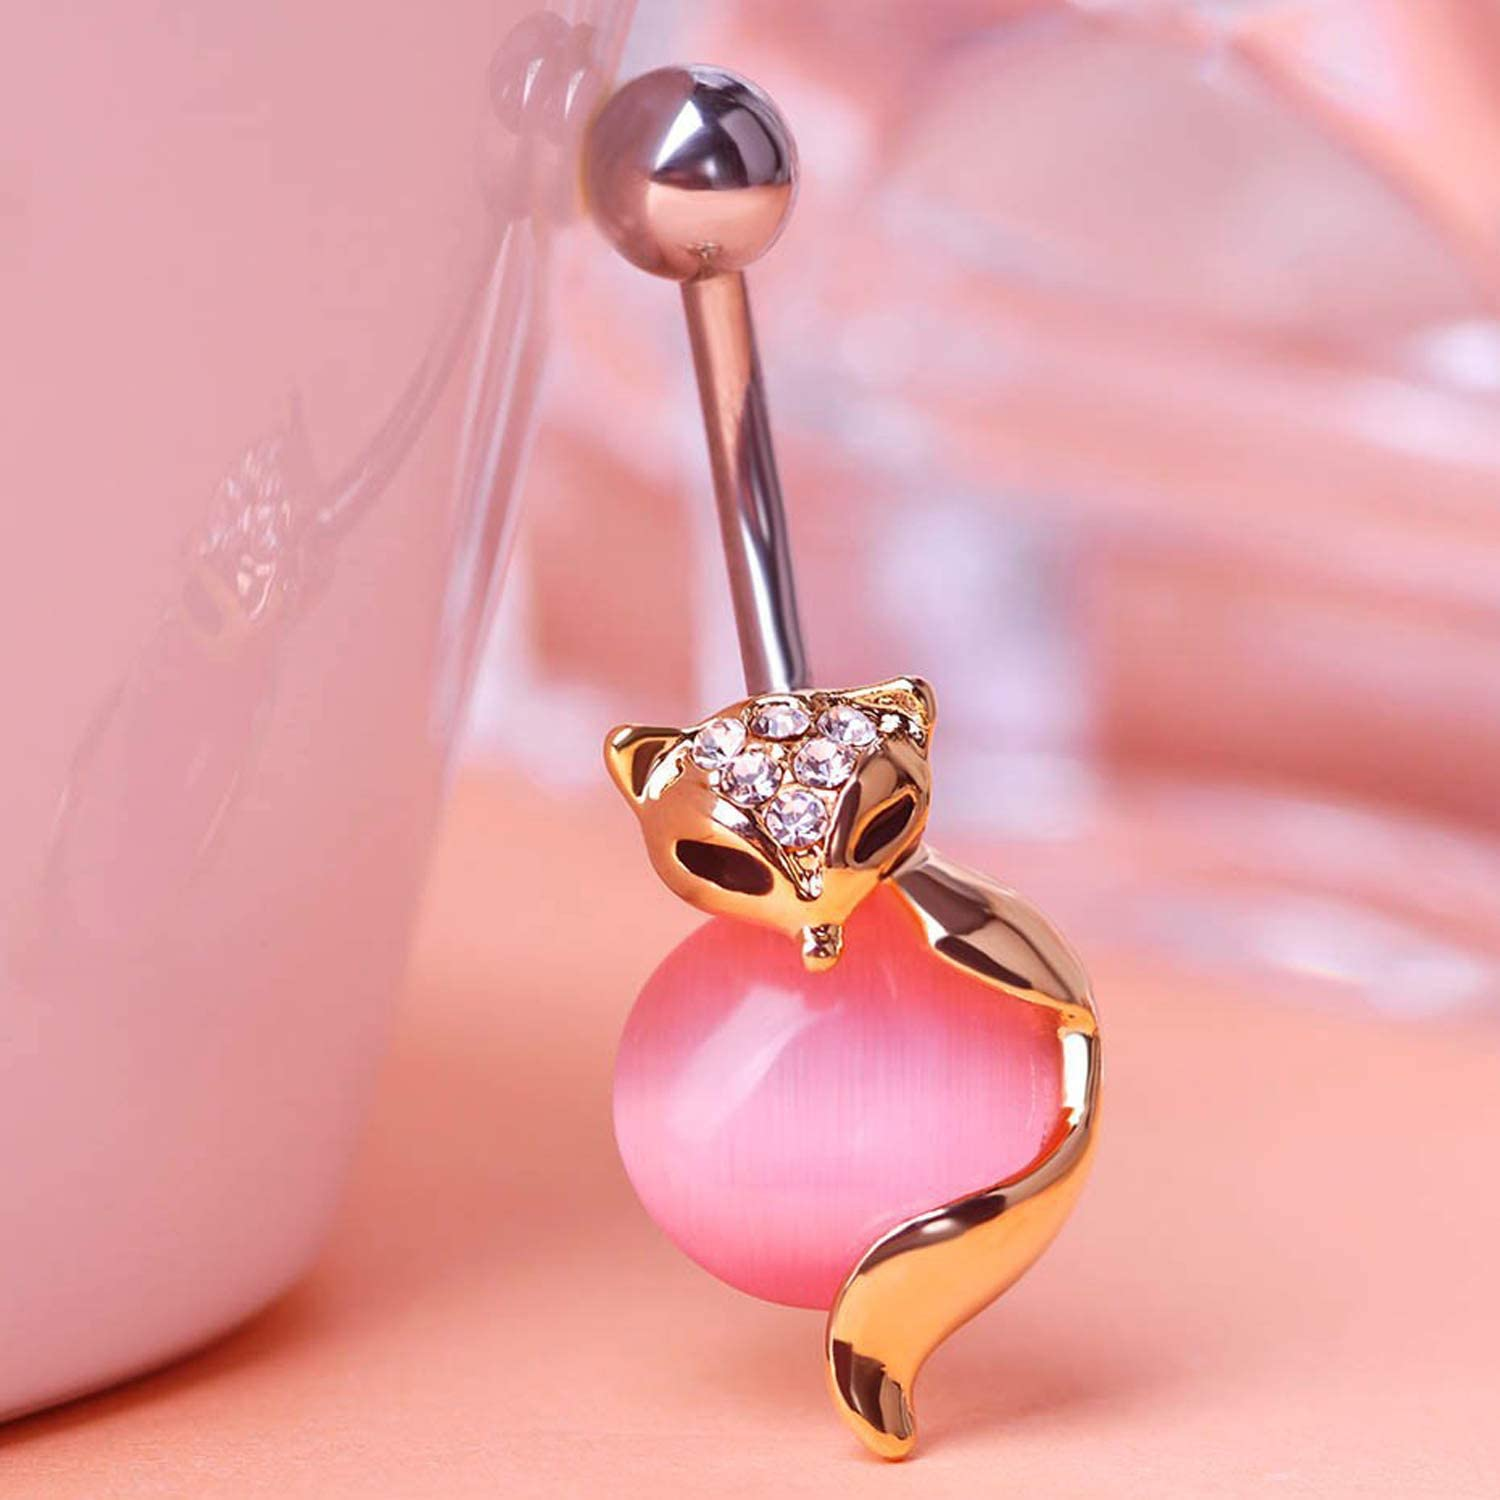 TinCiy 14G Surgical Steel Belly Button Rings Fox on Gem Ball Navel Body Piercing Jewelry